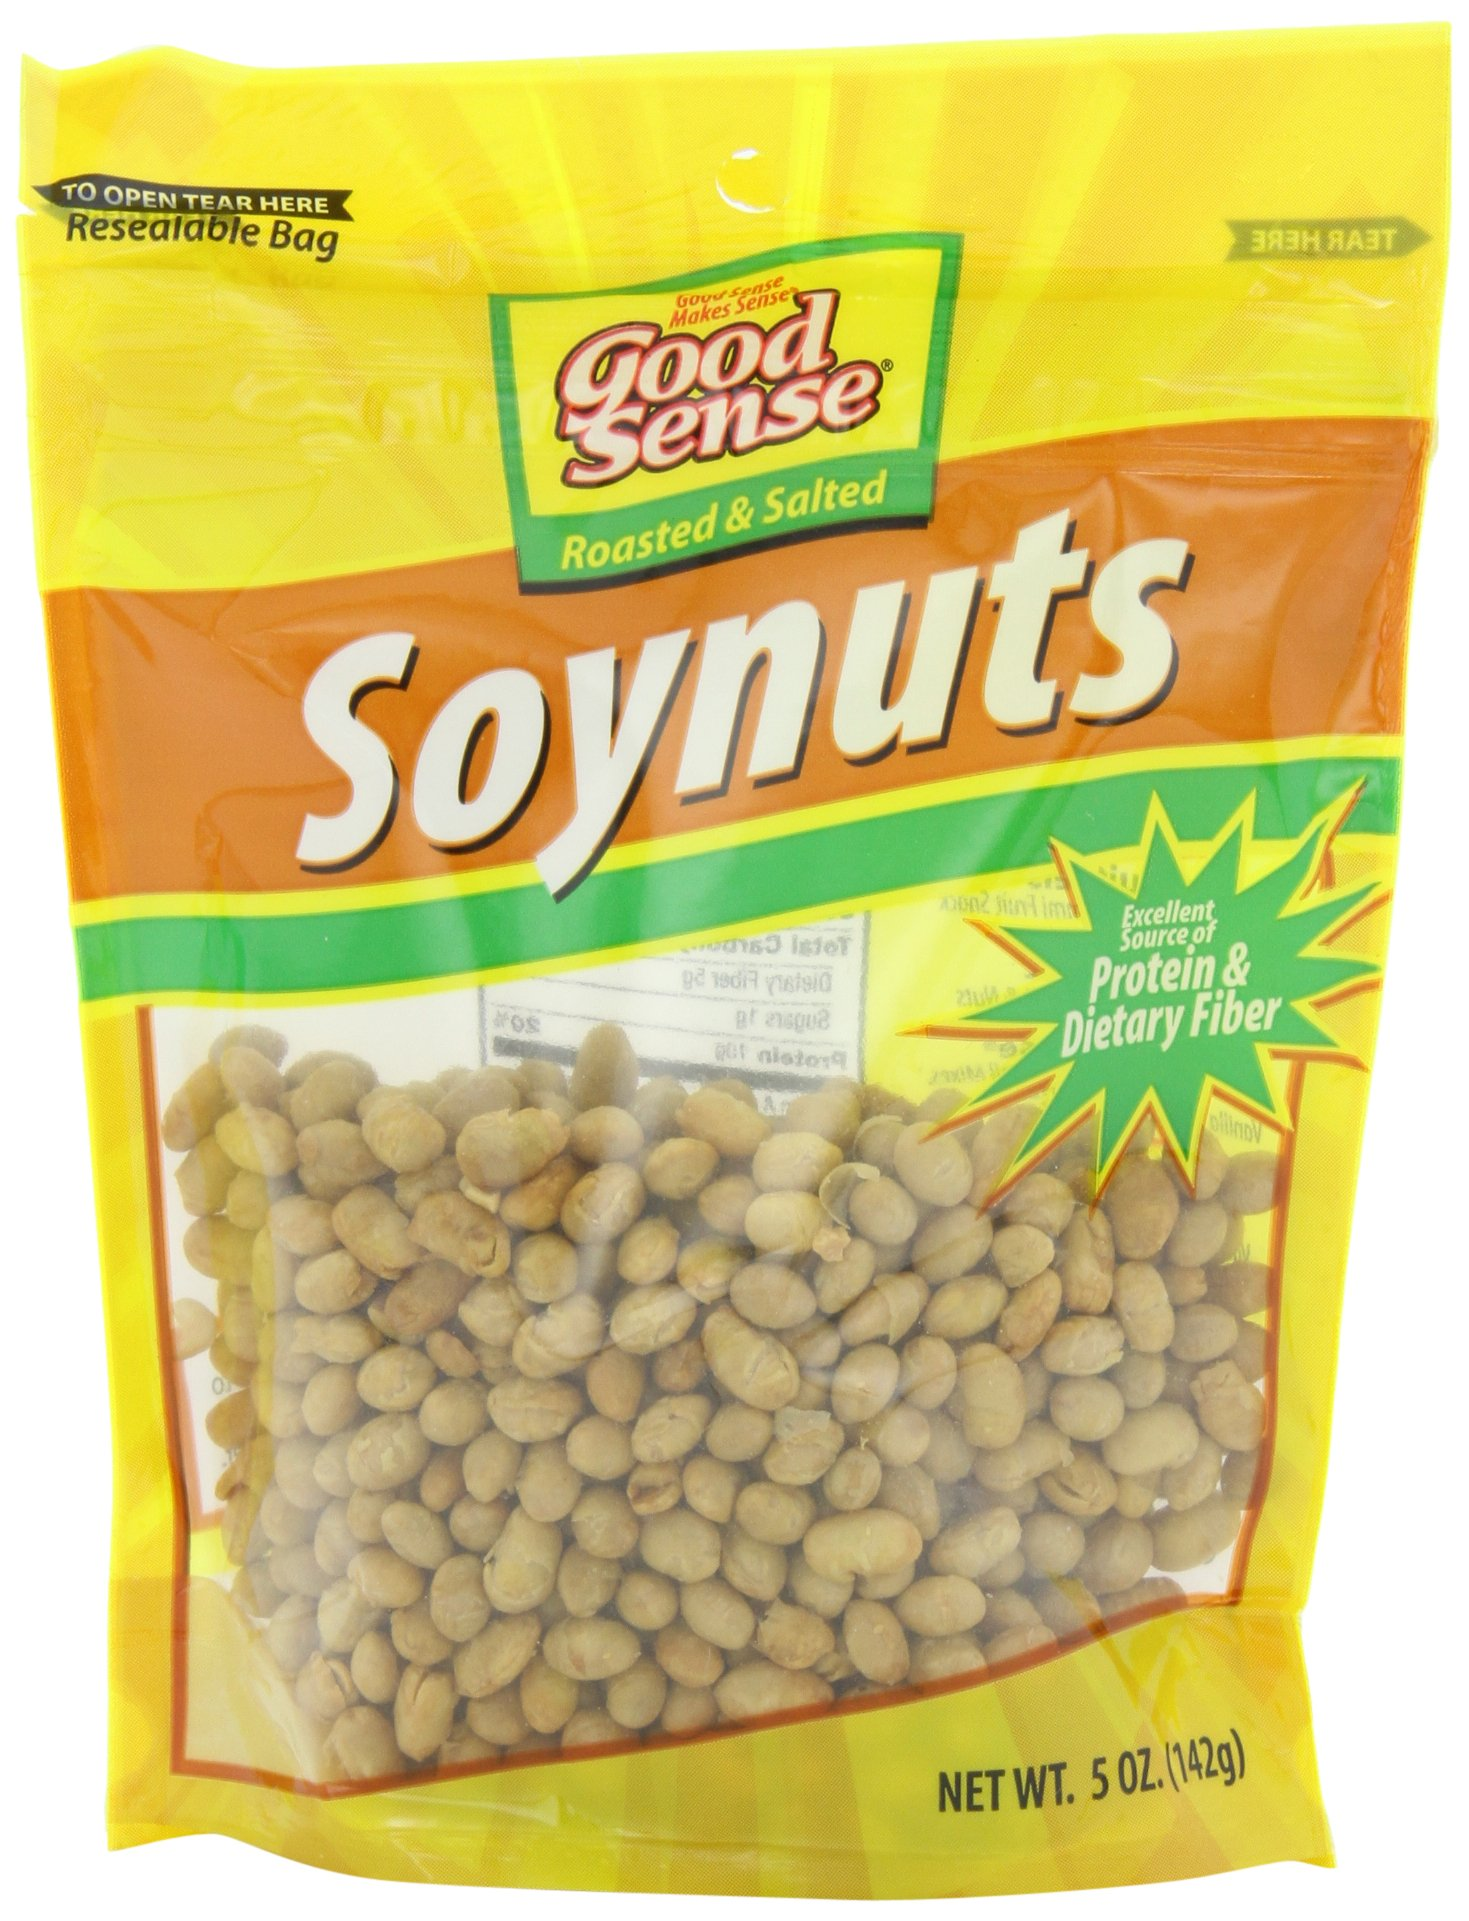 Good Sense Roasted & Salted Soynuts, 5-Ounce Bags (Pack of 12) by Good Sense